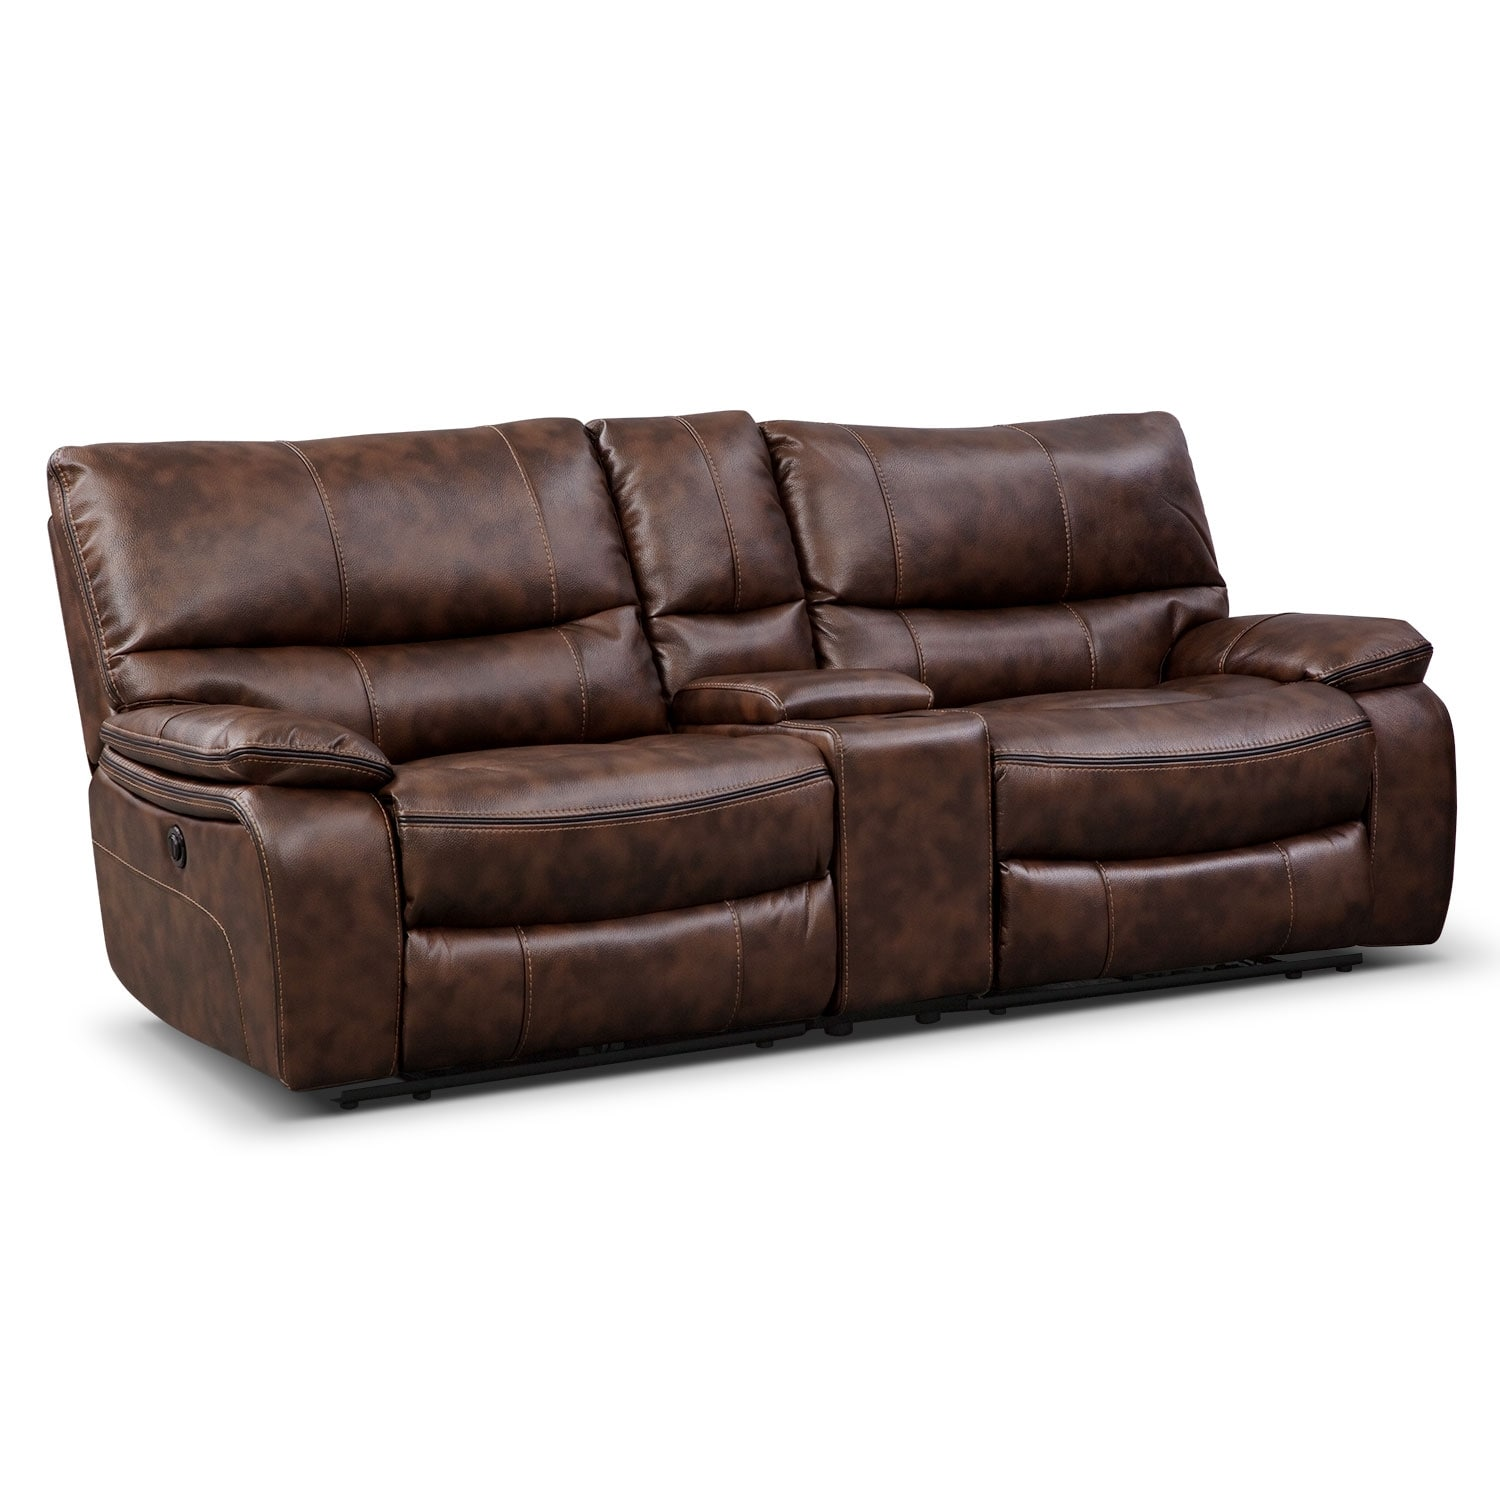 Orlando Power Reclining Sofa With Console Brown American Signature Furniture